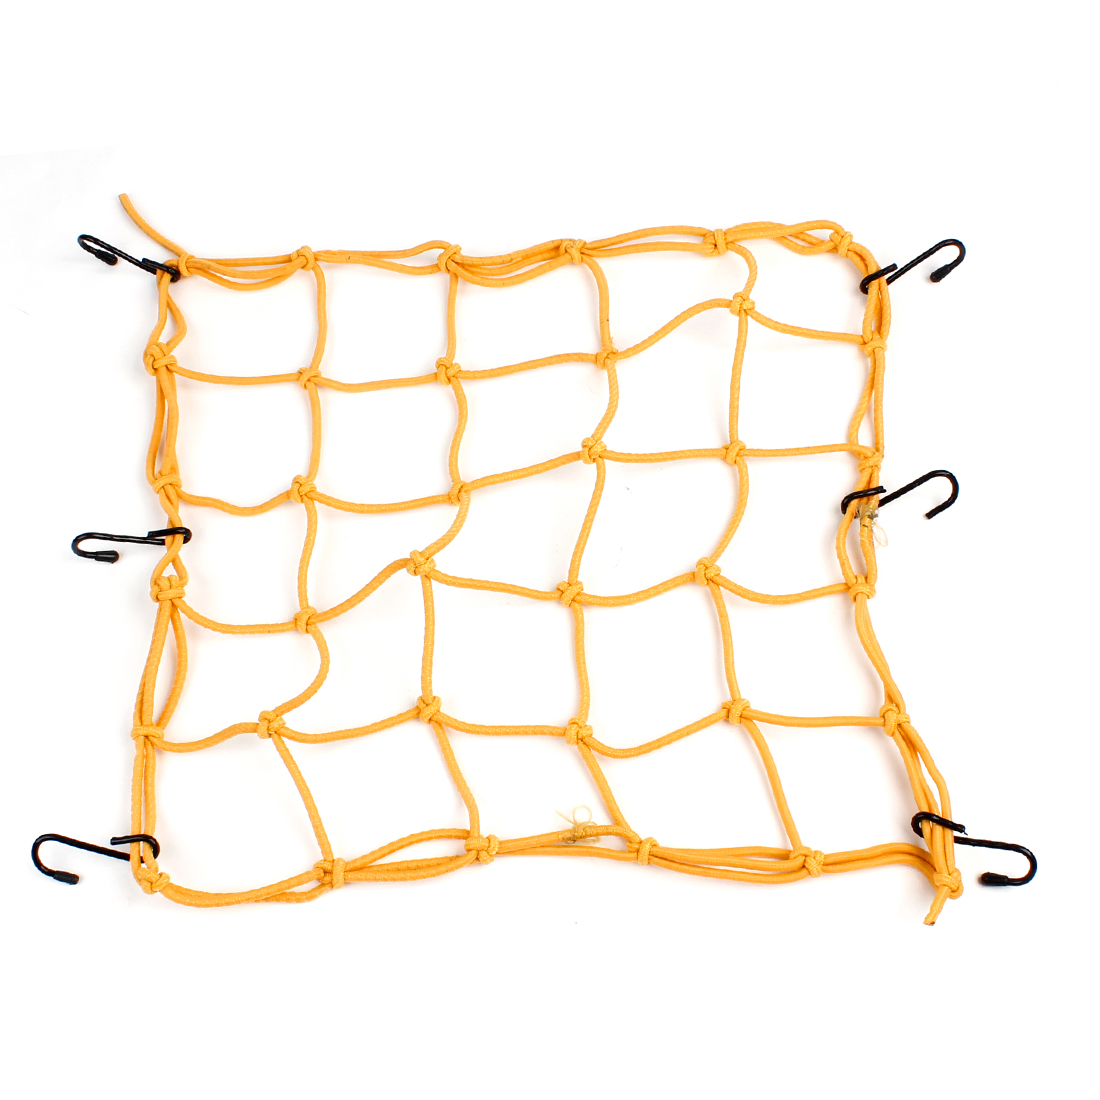 Unique Bargains Universal Stretchy 6 Hook Motorcycle Car Cargo Package Flexible Net Yellow